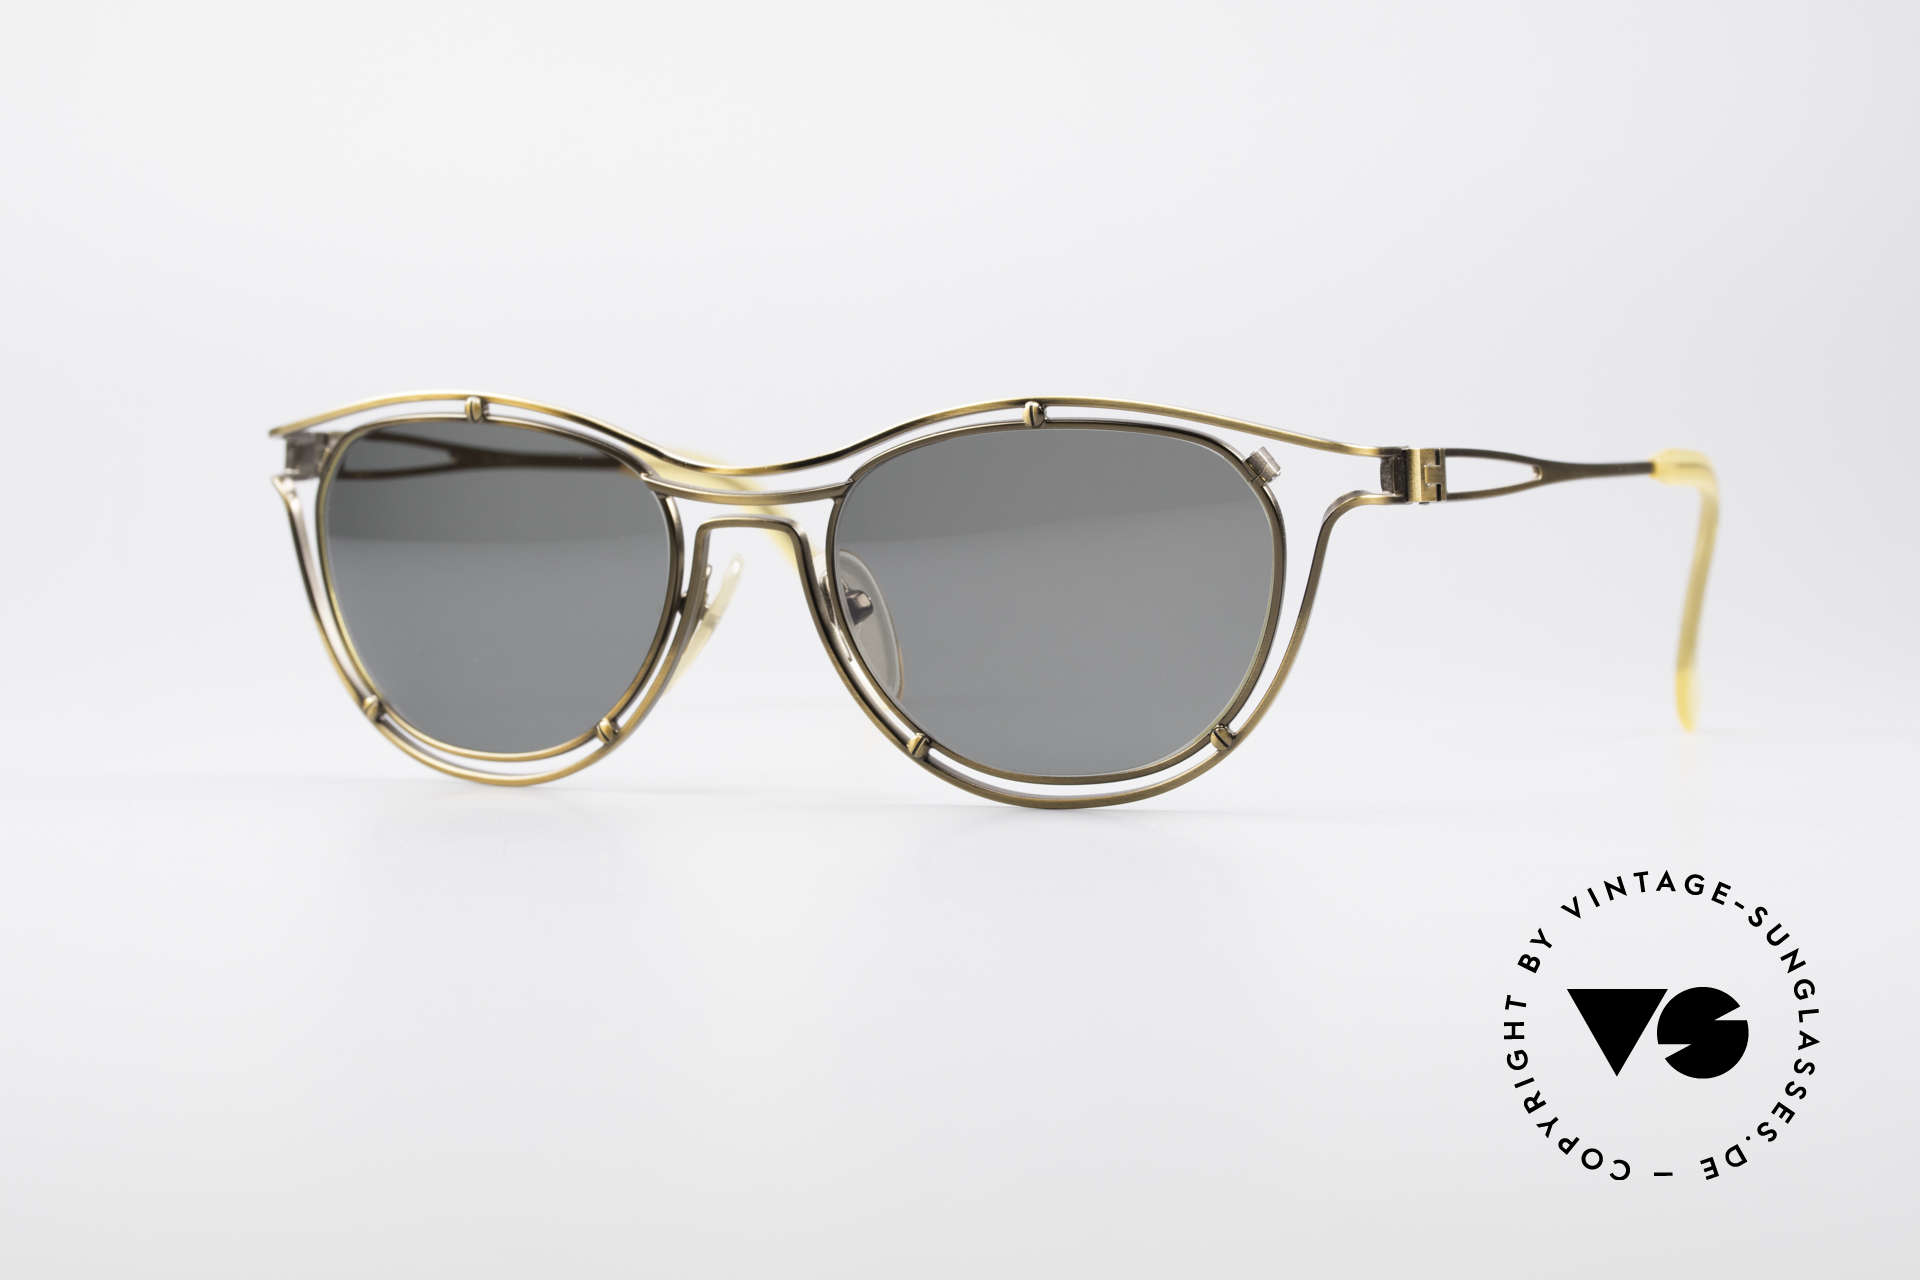 Jean Paul Gaultier 56-2176 Rare Designer Sunglasses, spectacular Jean Paul GAULTIER designer shades, Made for Men and Women